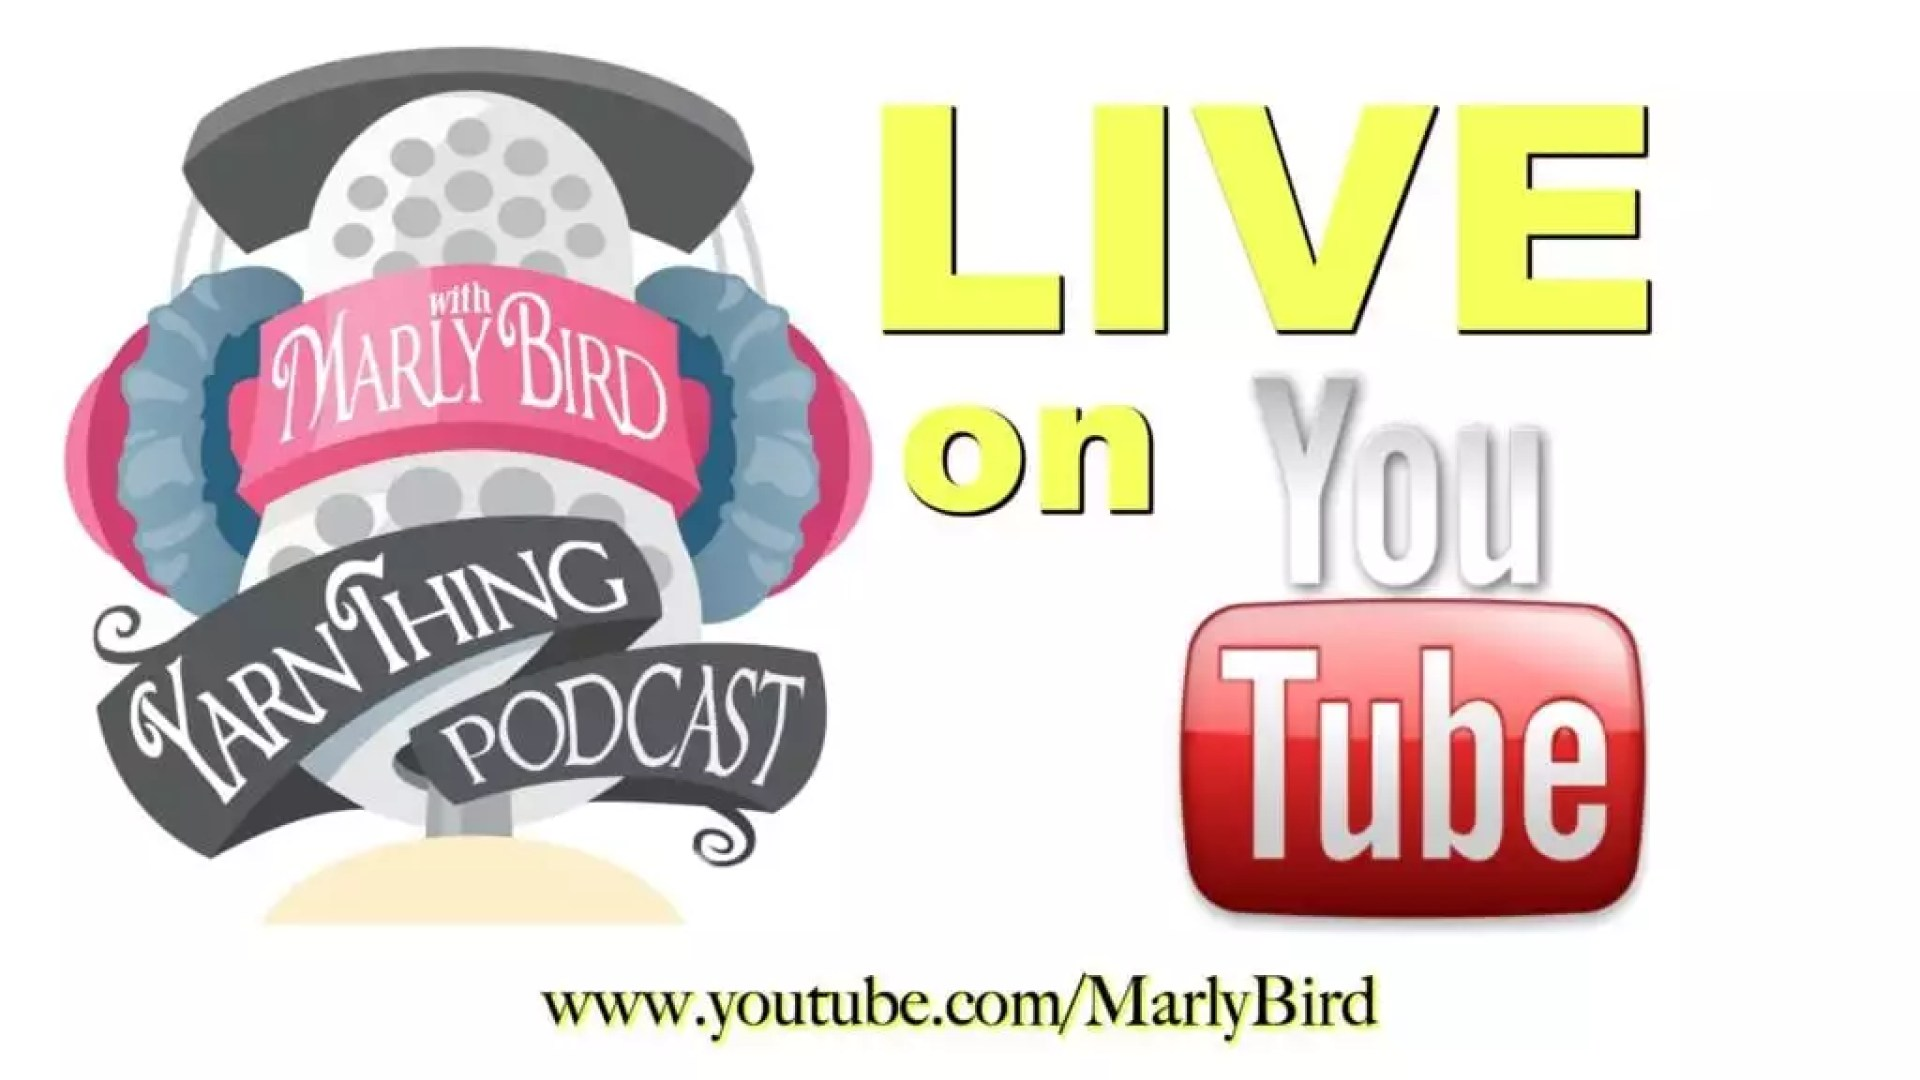 Yarn Thing Podcast with Marly Bird Live on YouTube